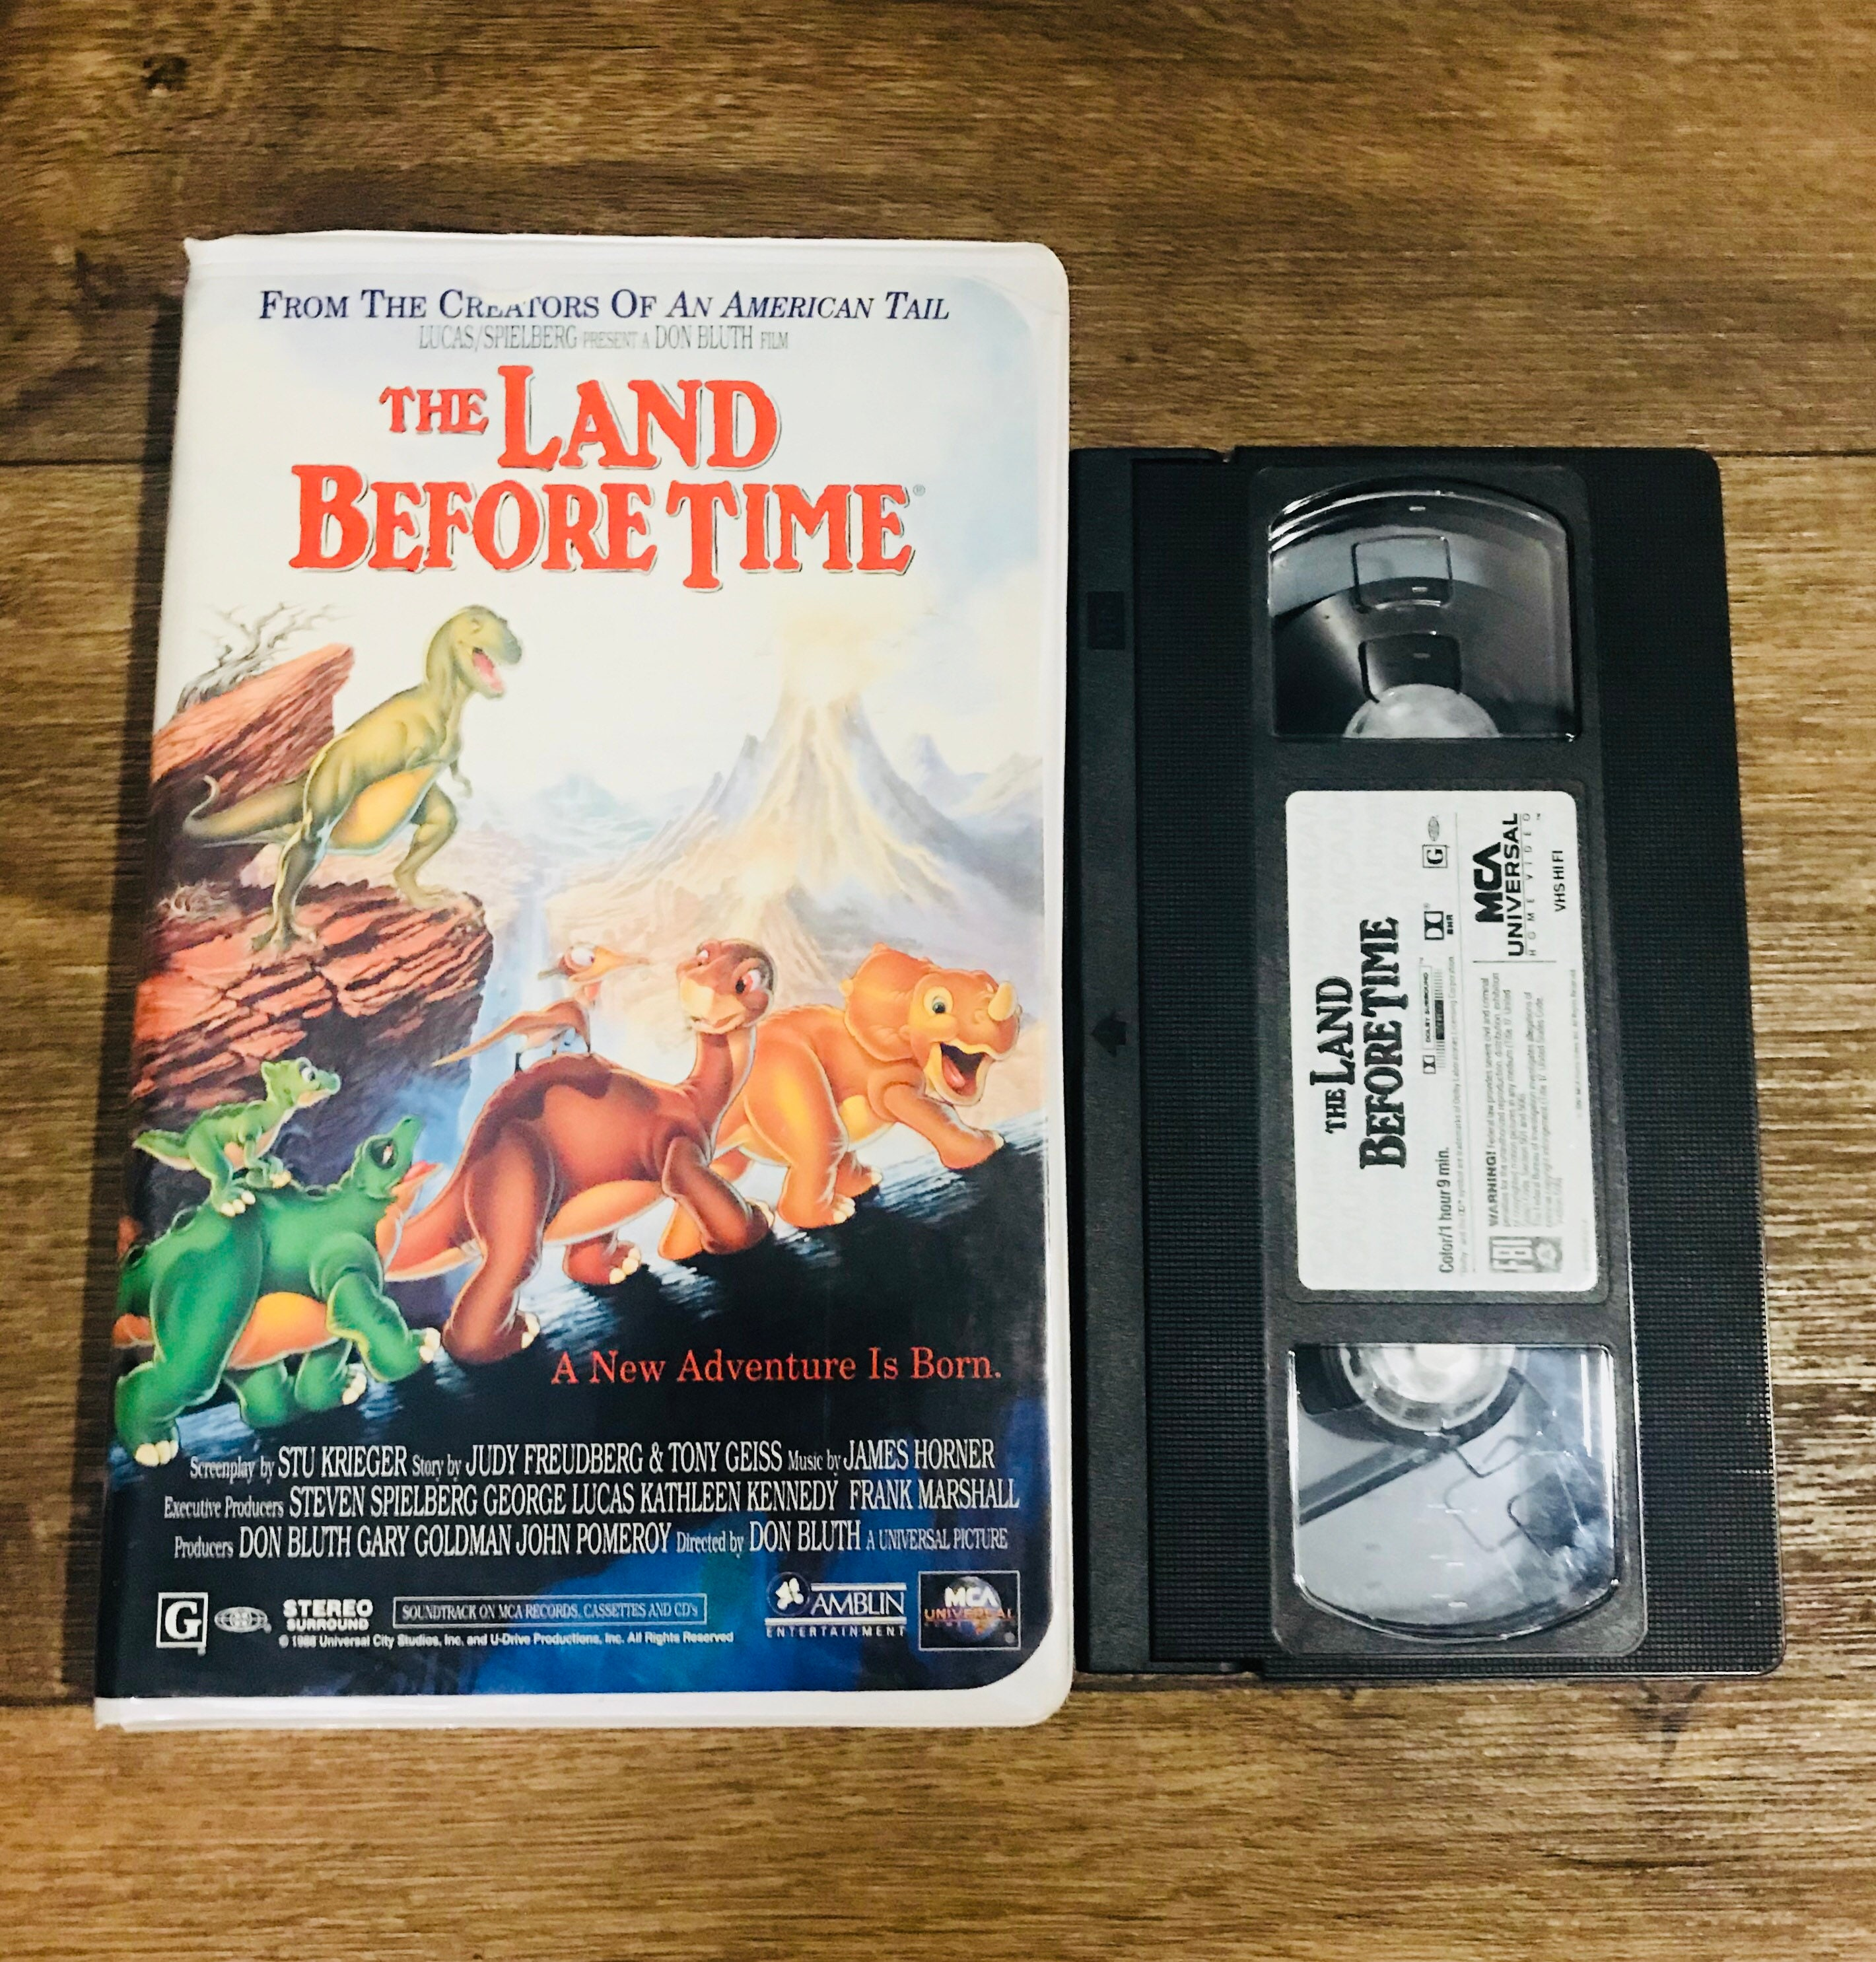 The Land Before Time VHS | Etsy